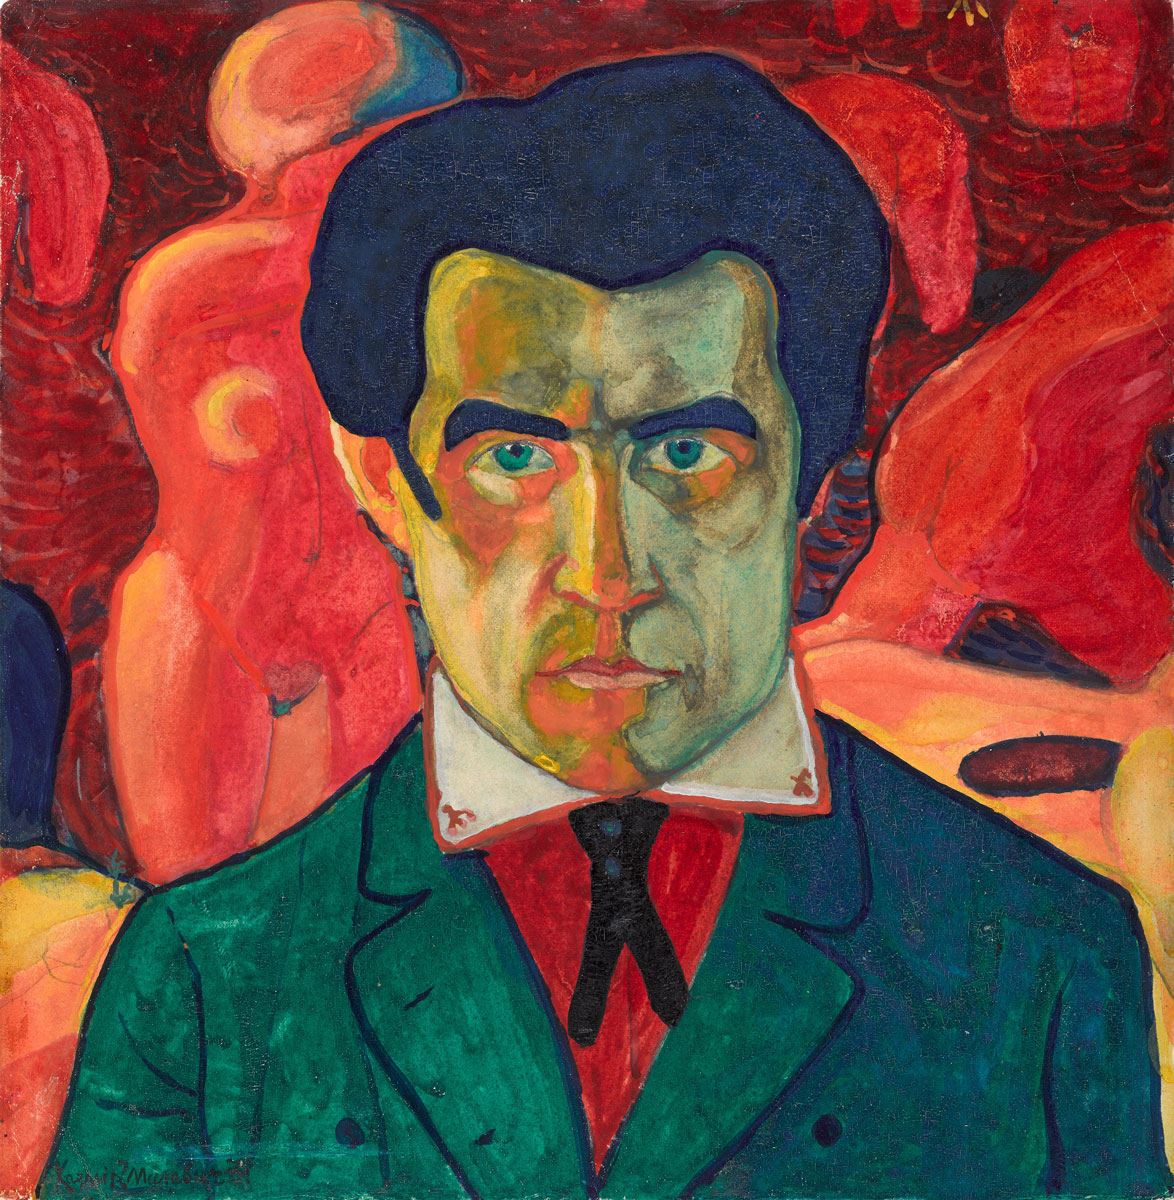 5.-Kazimir-Malevich-Self-Portrait-1908-1910.-Collection-The-State-Tretyakov-Gallery..jpg